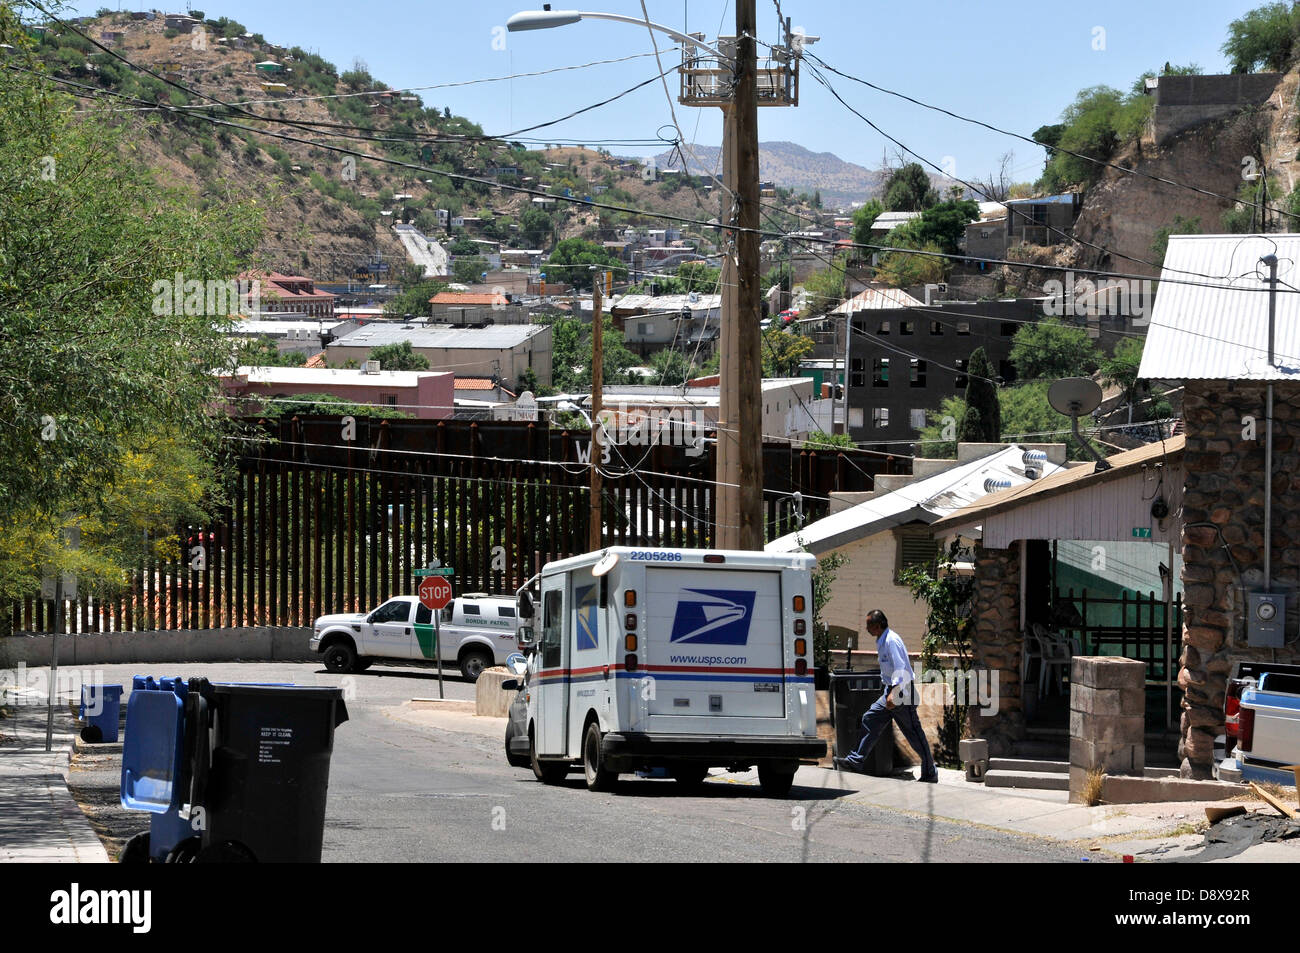 A US postal worker delivers mail to a residence near the border wall in Nogales, Arizona, USA, across from Sonora, - Stock Image